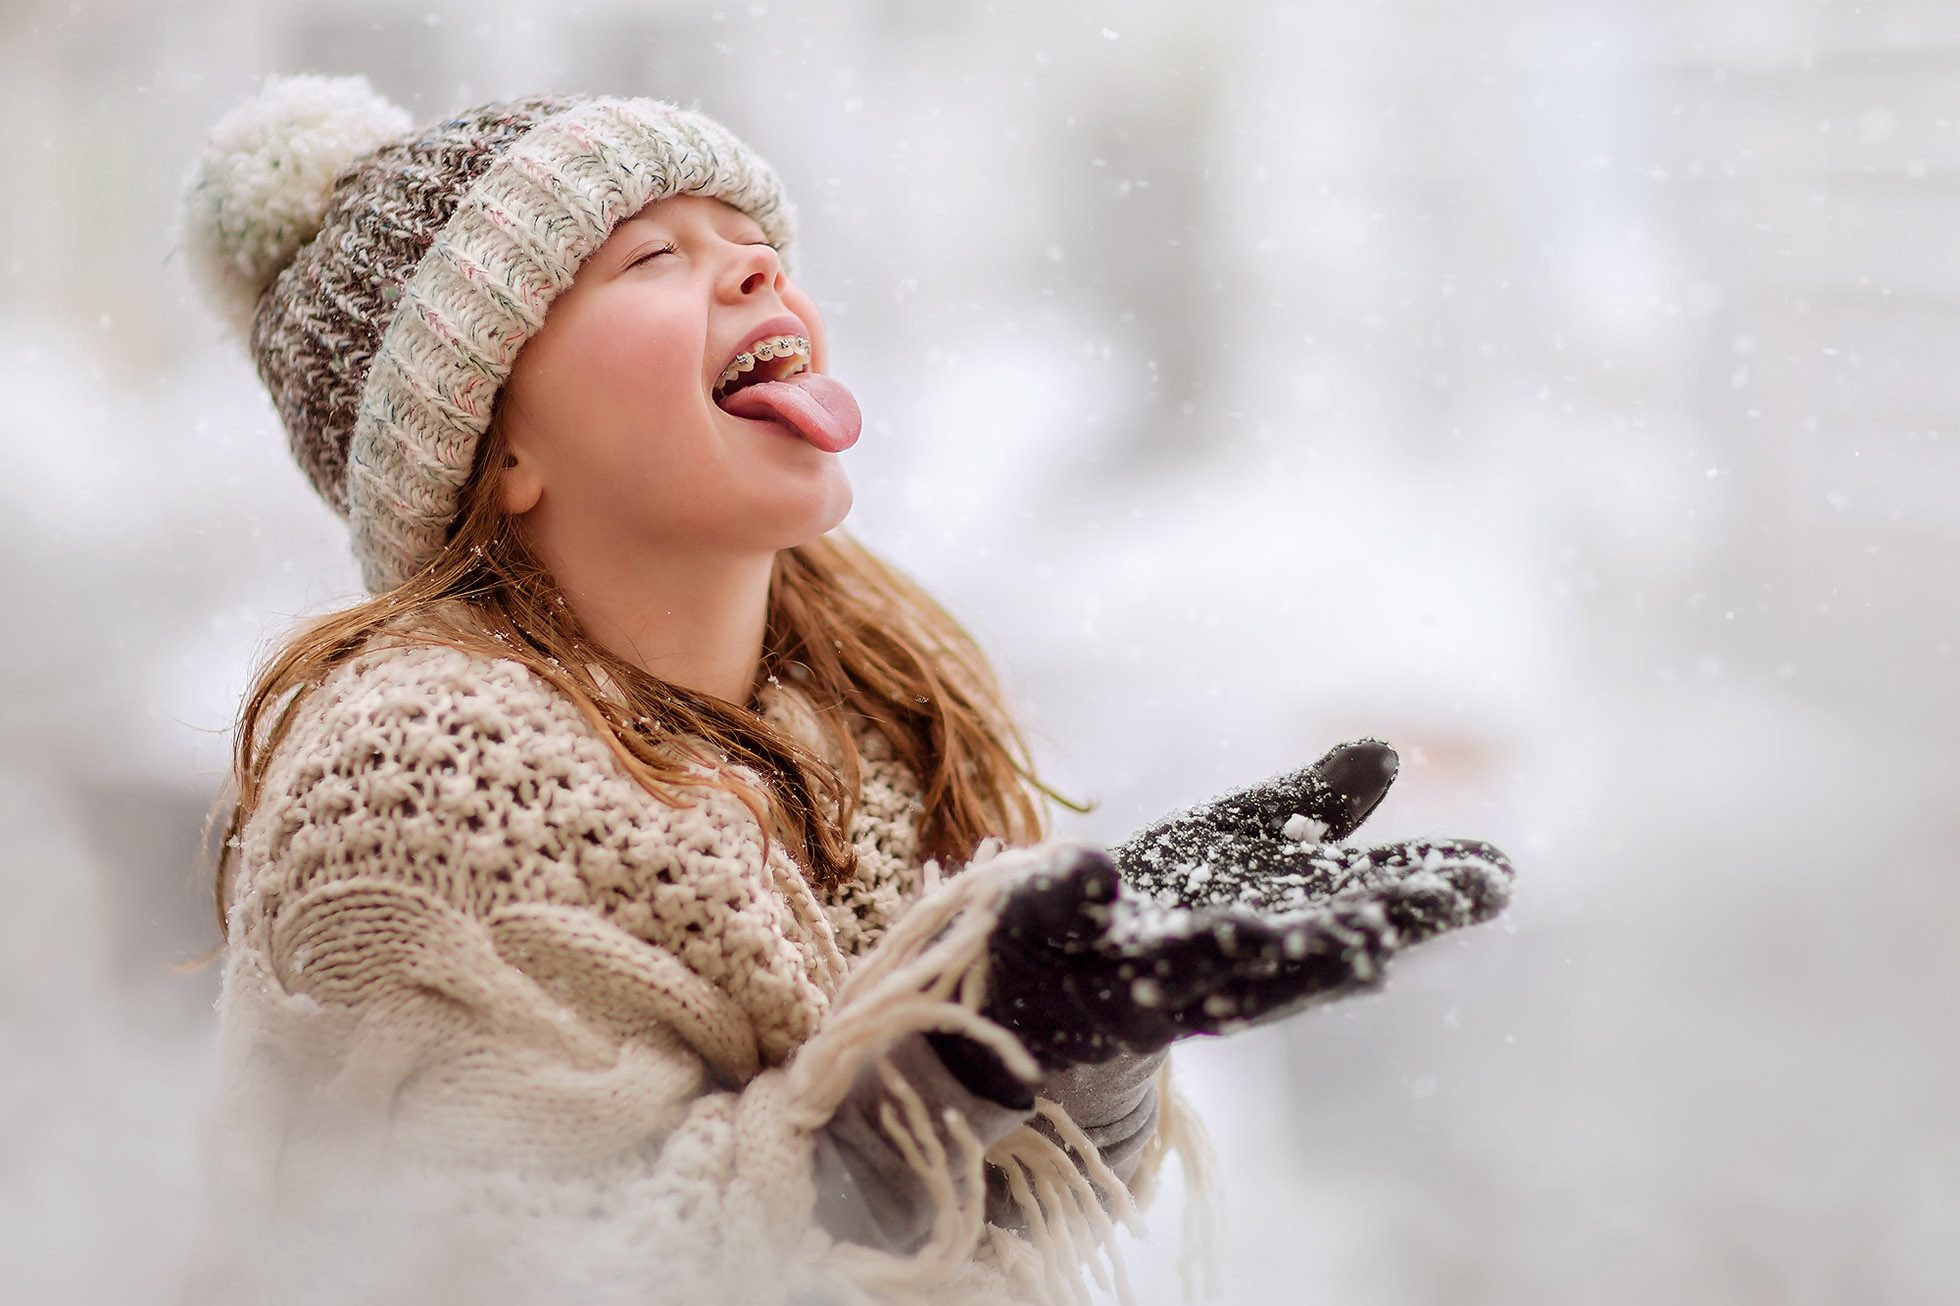 Portrait of a girl eating snow by Willie Kers